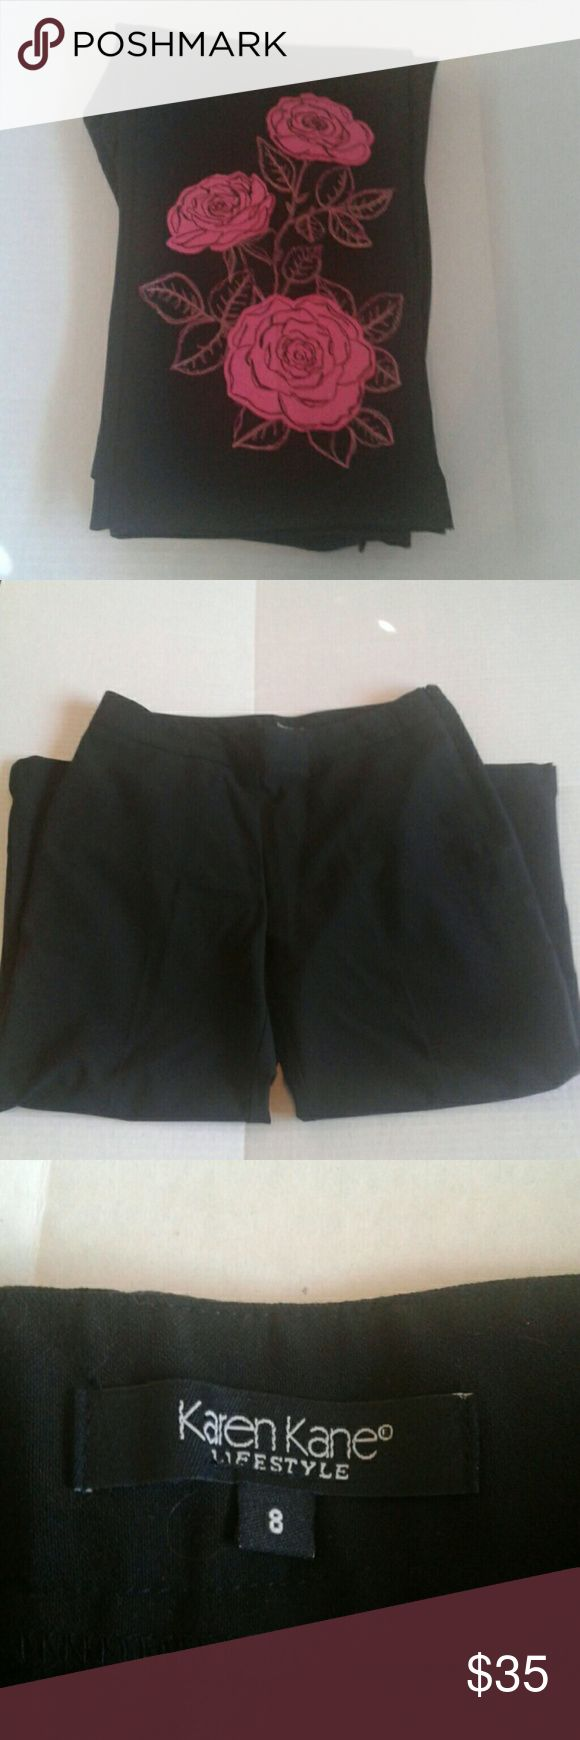 Karen Kane Capri pants with flowers This is a pair of black Karen Kane Capri pants with pink flowers on the bottom of one leg. They are a size 8 and are NWOT. Thanks so much for shopping with me on Postmark! Karen Kane Pants Capris